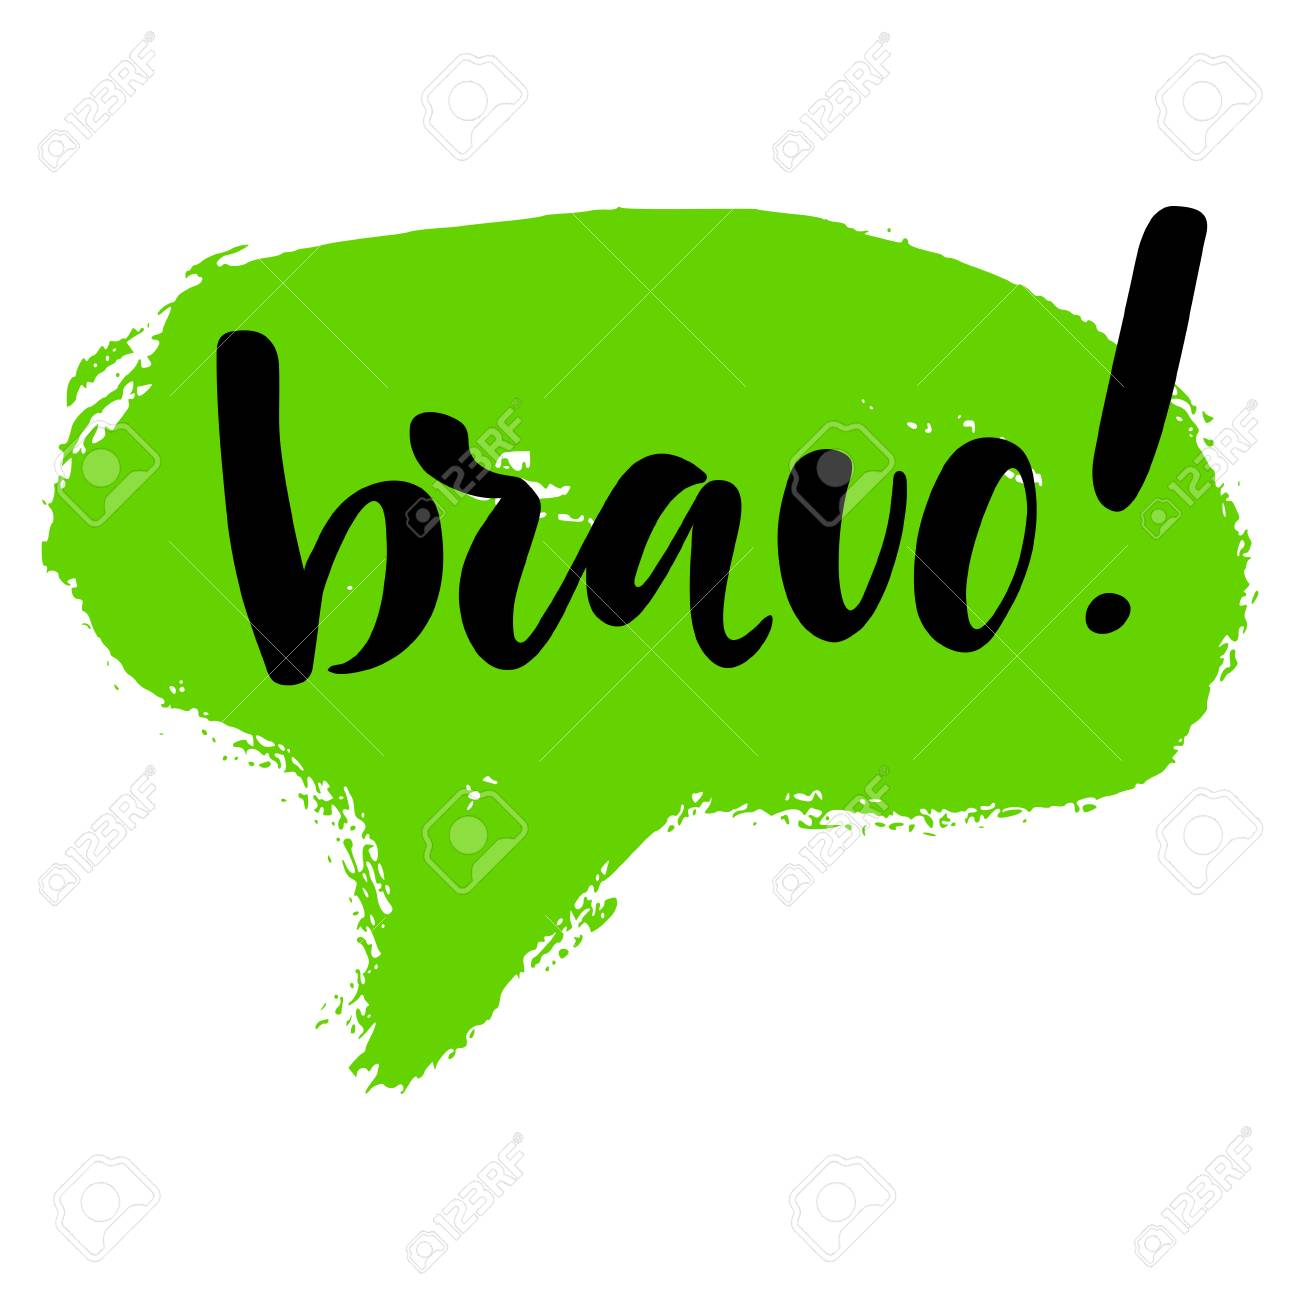 Image Bravo bravo greeting and congratulation card. a phrase for successful